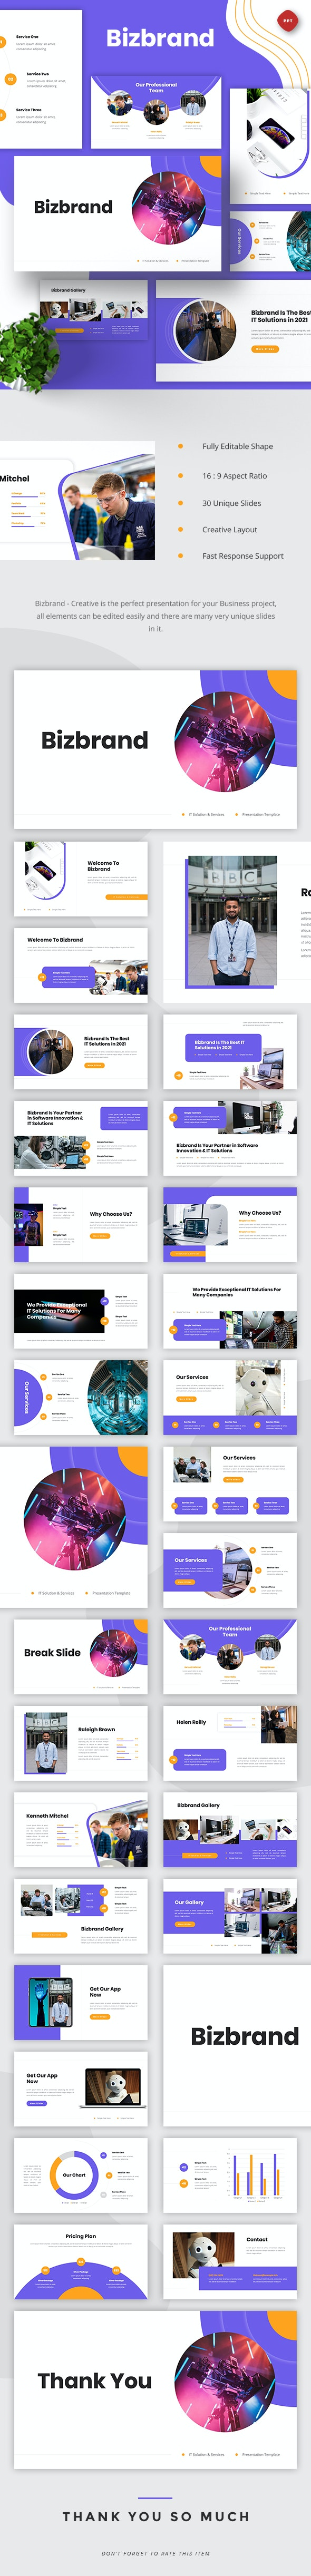 Bizbrand - IT Solutions & Services Powerpoint - Business PowerPoint Templates